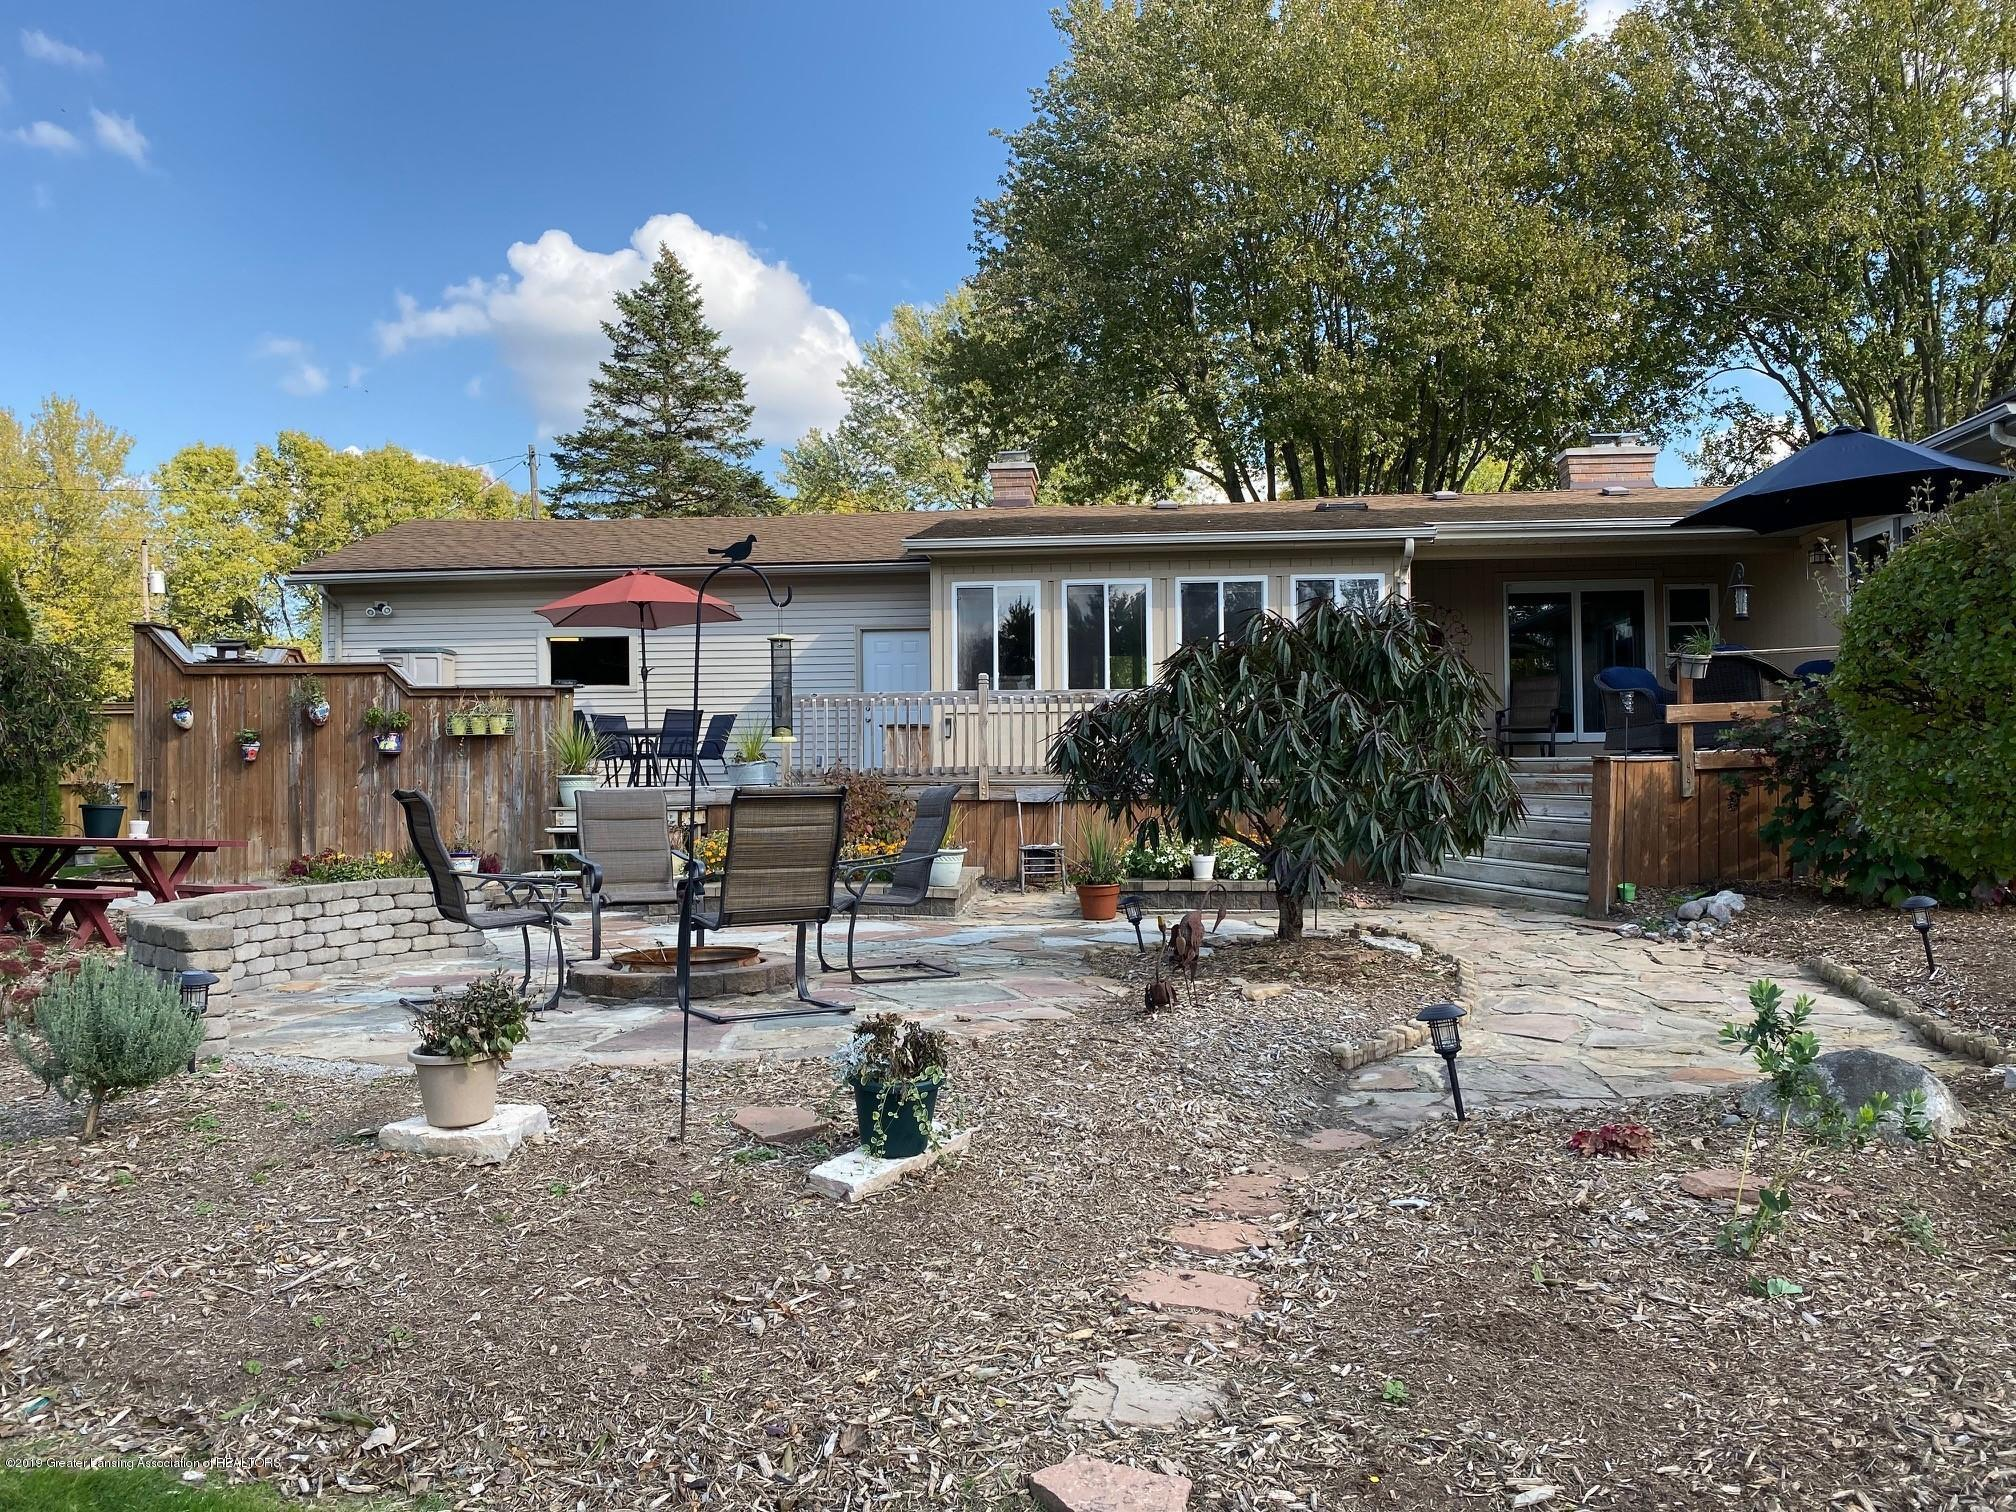 12925 E Melody Rd - Exceptional Outdoor Living Space - 11